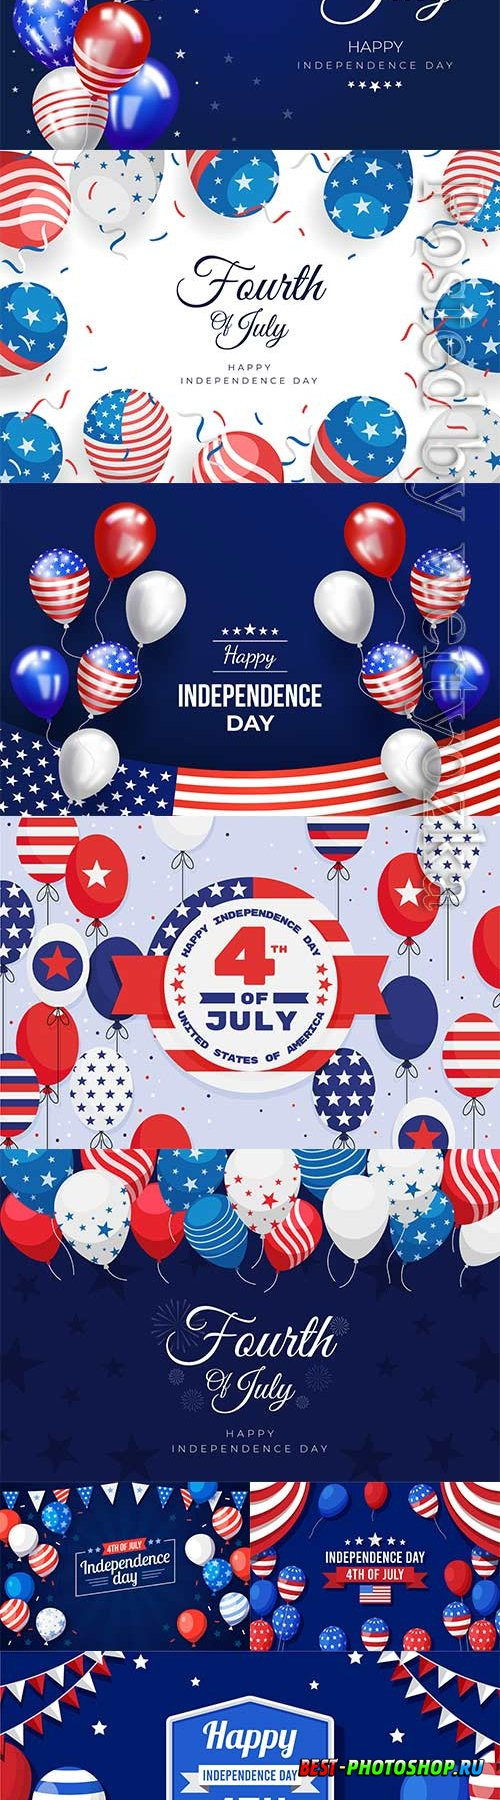 4th july independence day balloons vector background